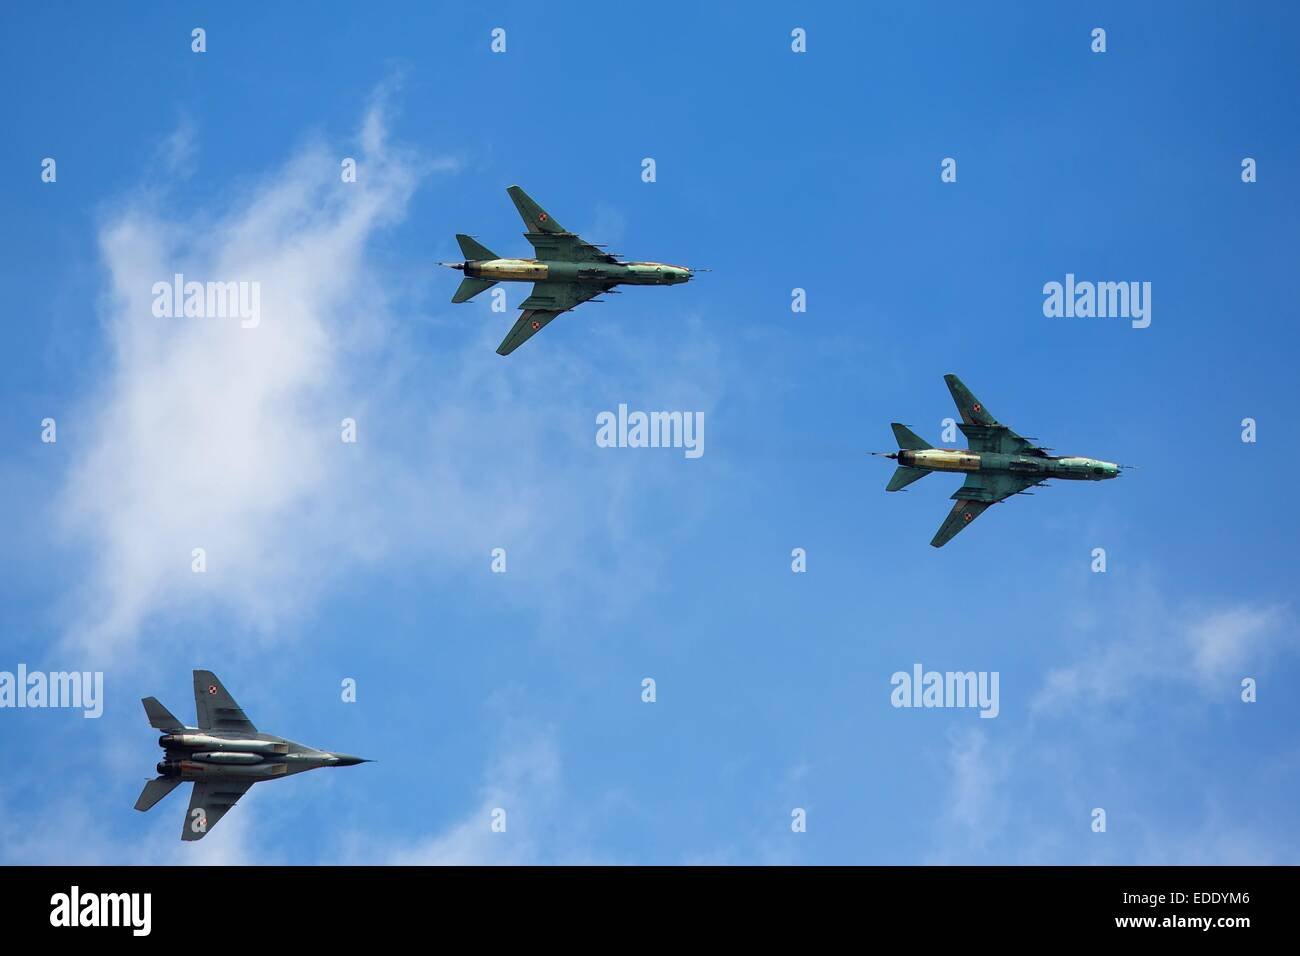 Military aircraft in flight - Stock Image